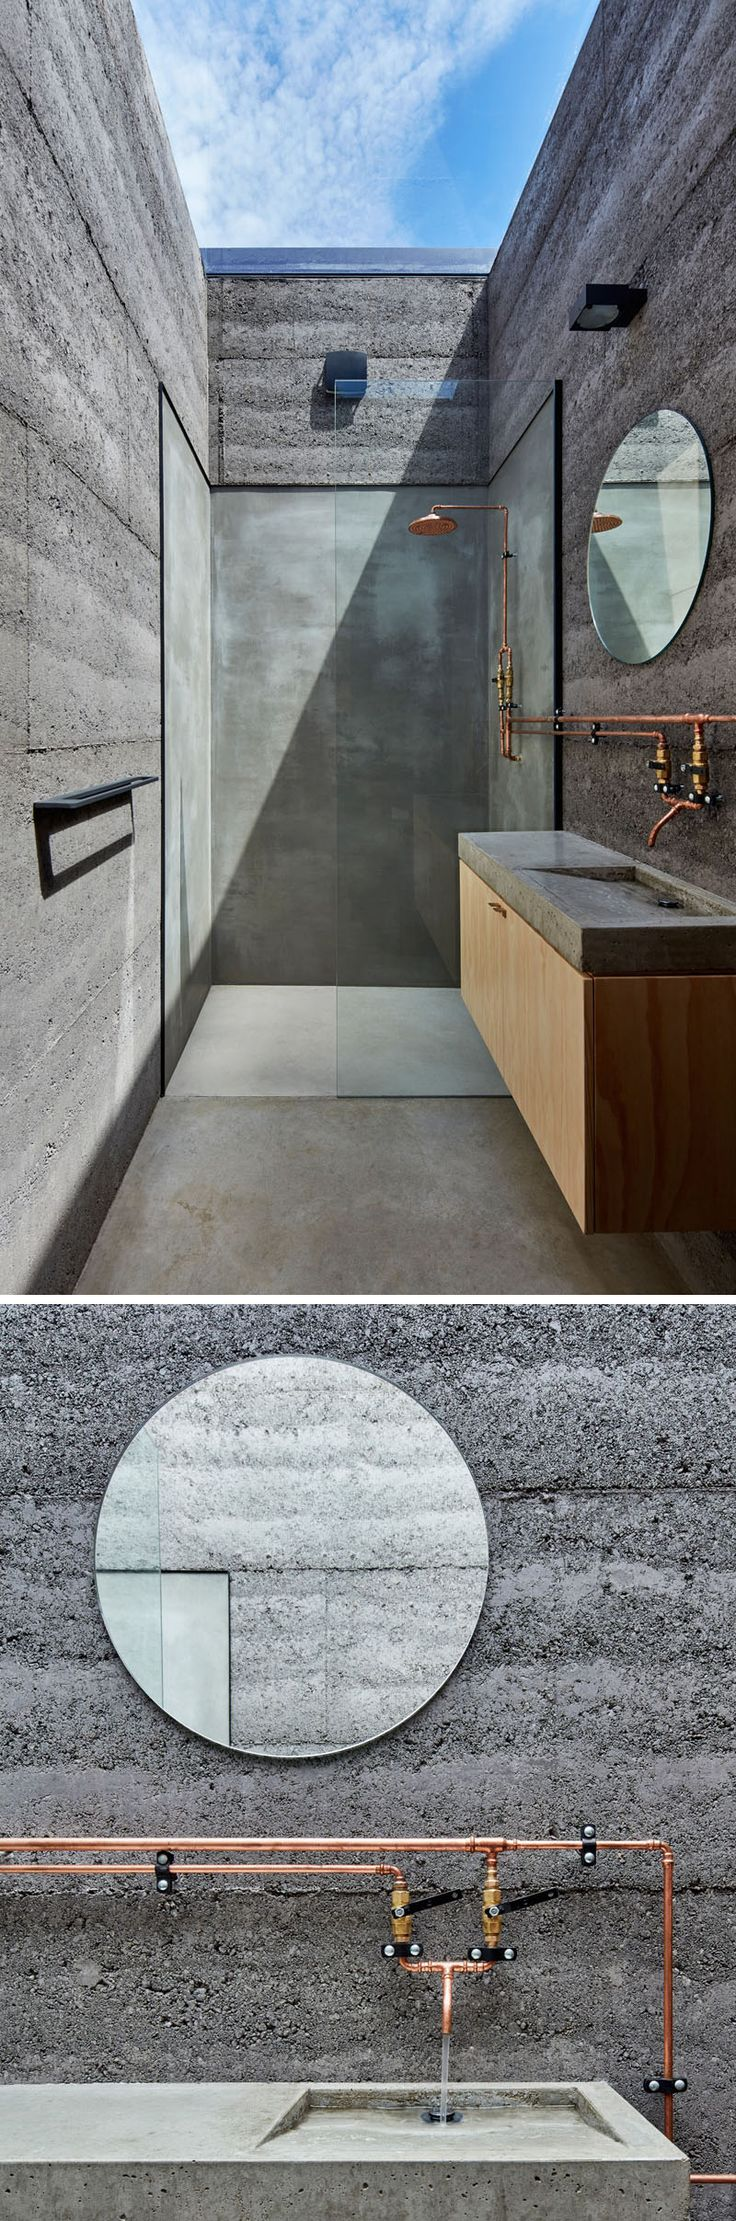 The bathroom has walls made from rammed earth in a charcoal color., and a large skylight makes it appear as though you are showering outdoors.